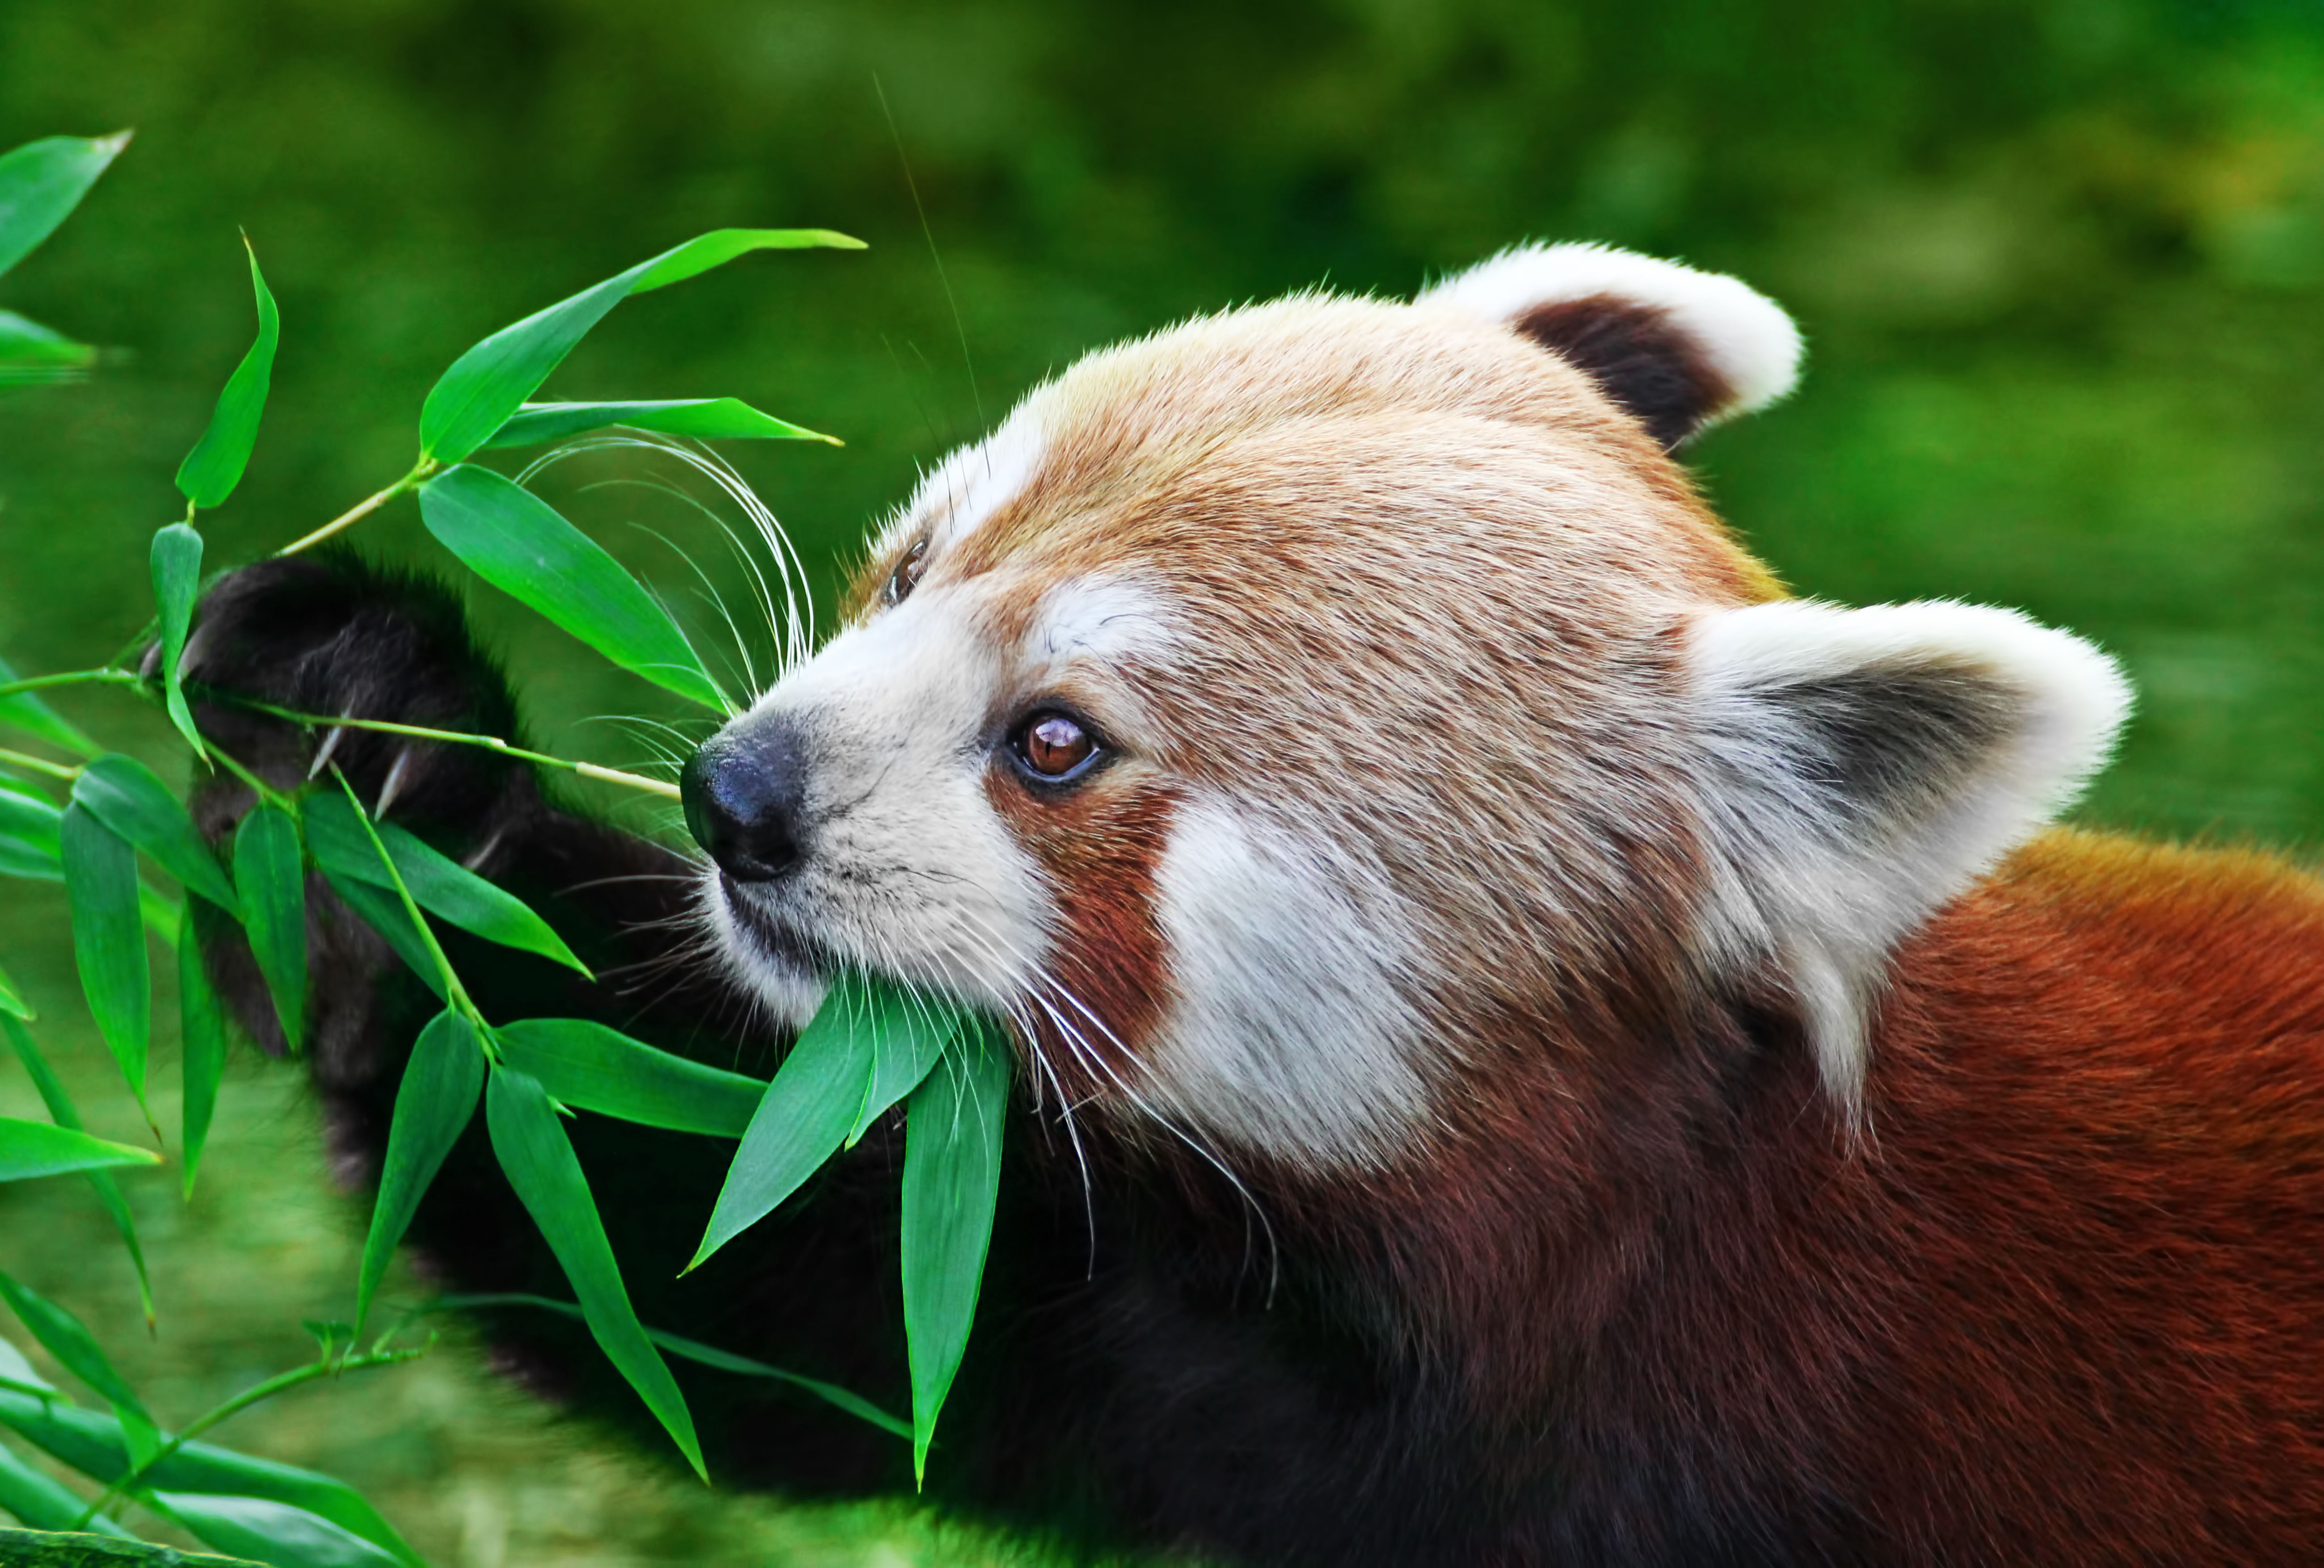 The red panda is adapted to spend its waking hours eating bamboo.